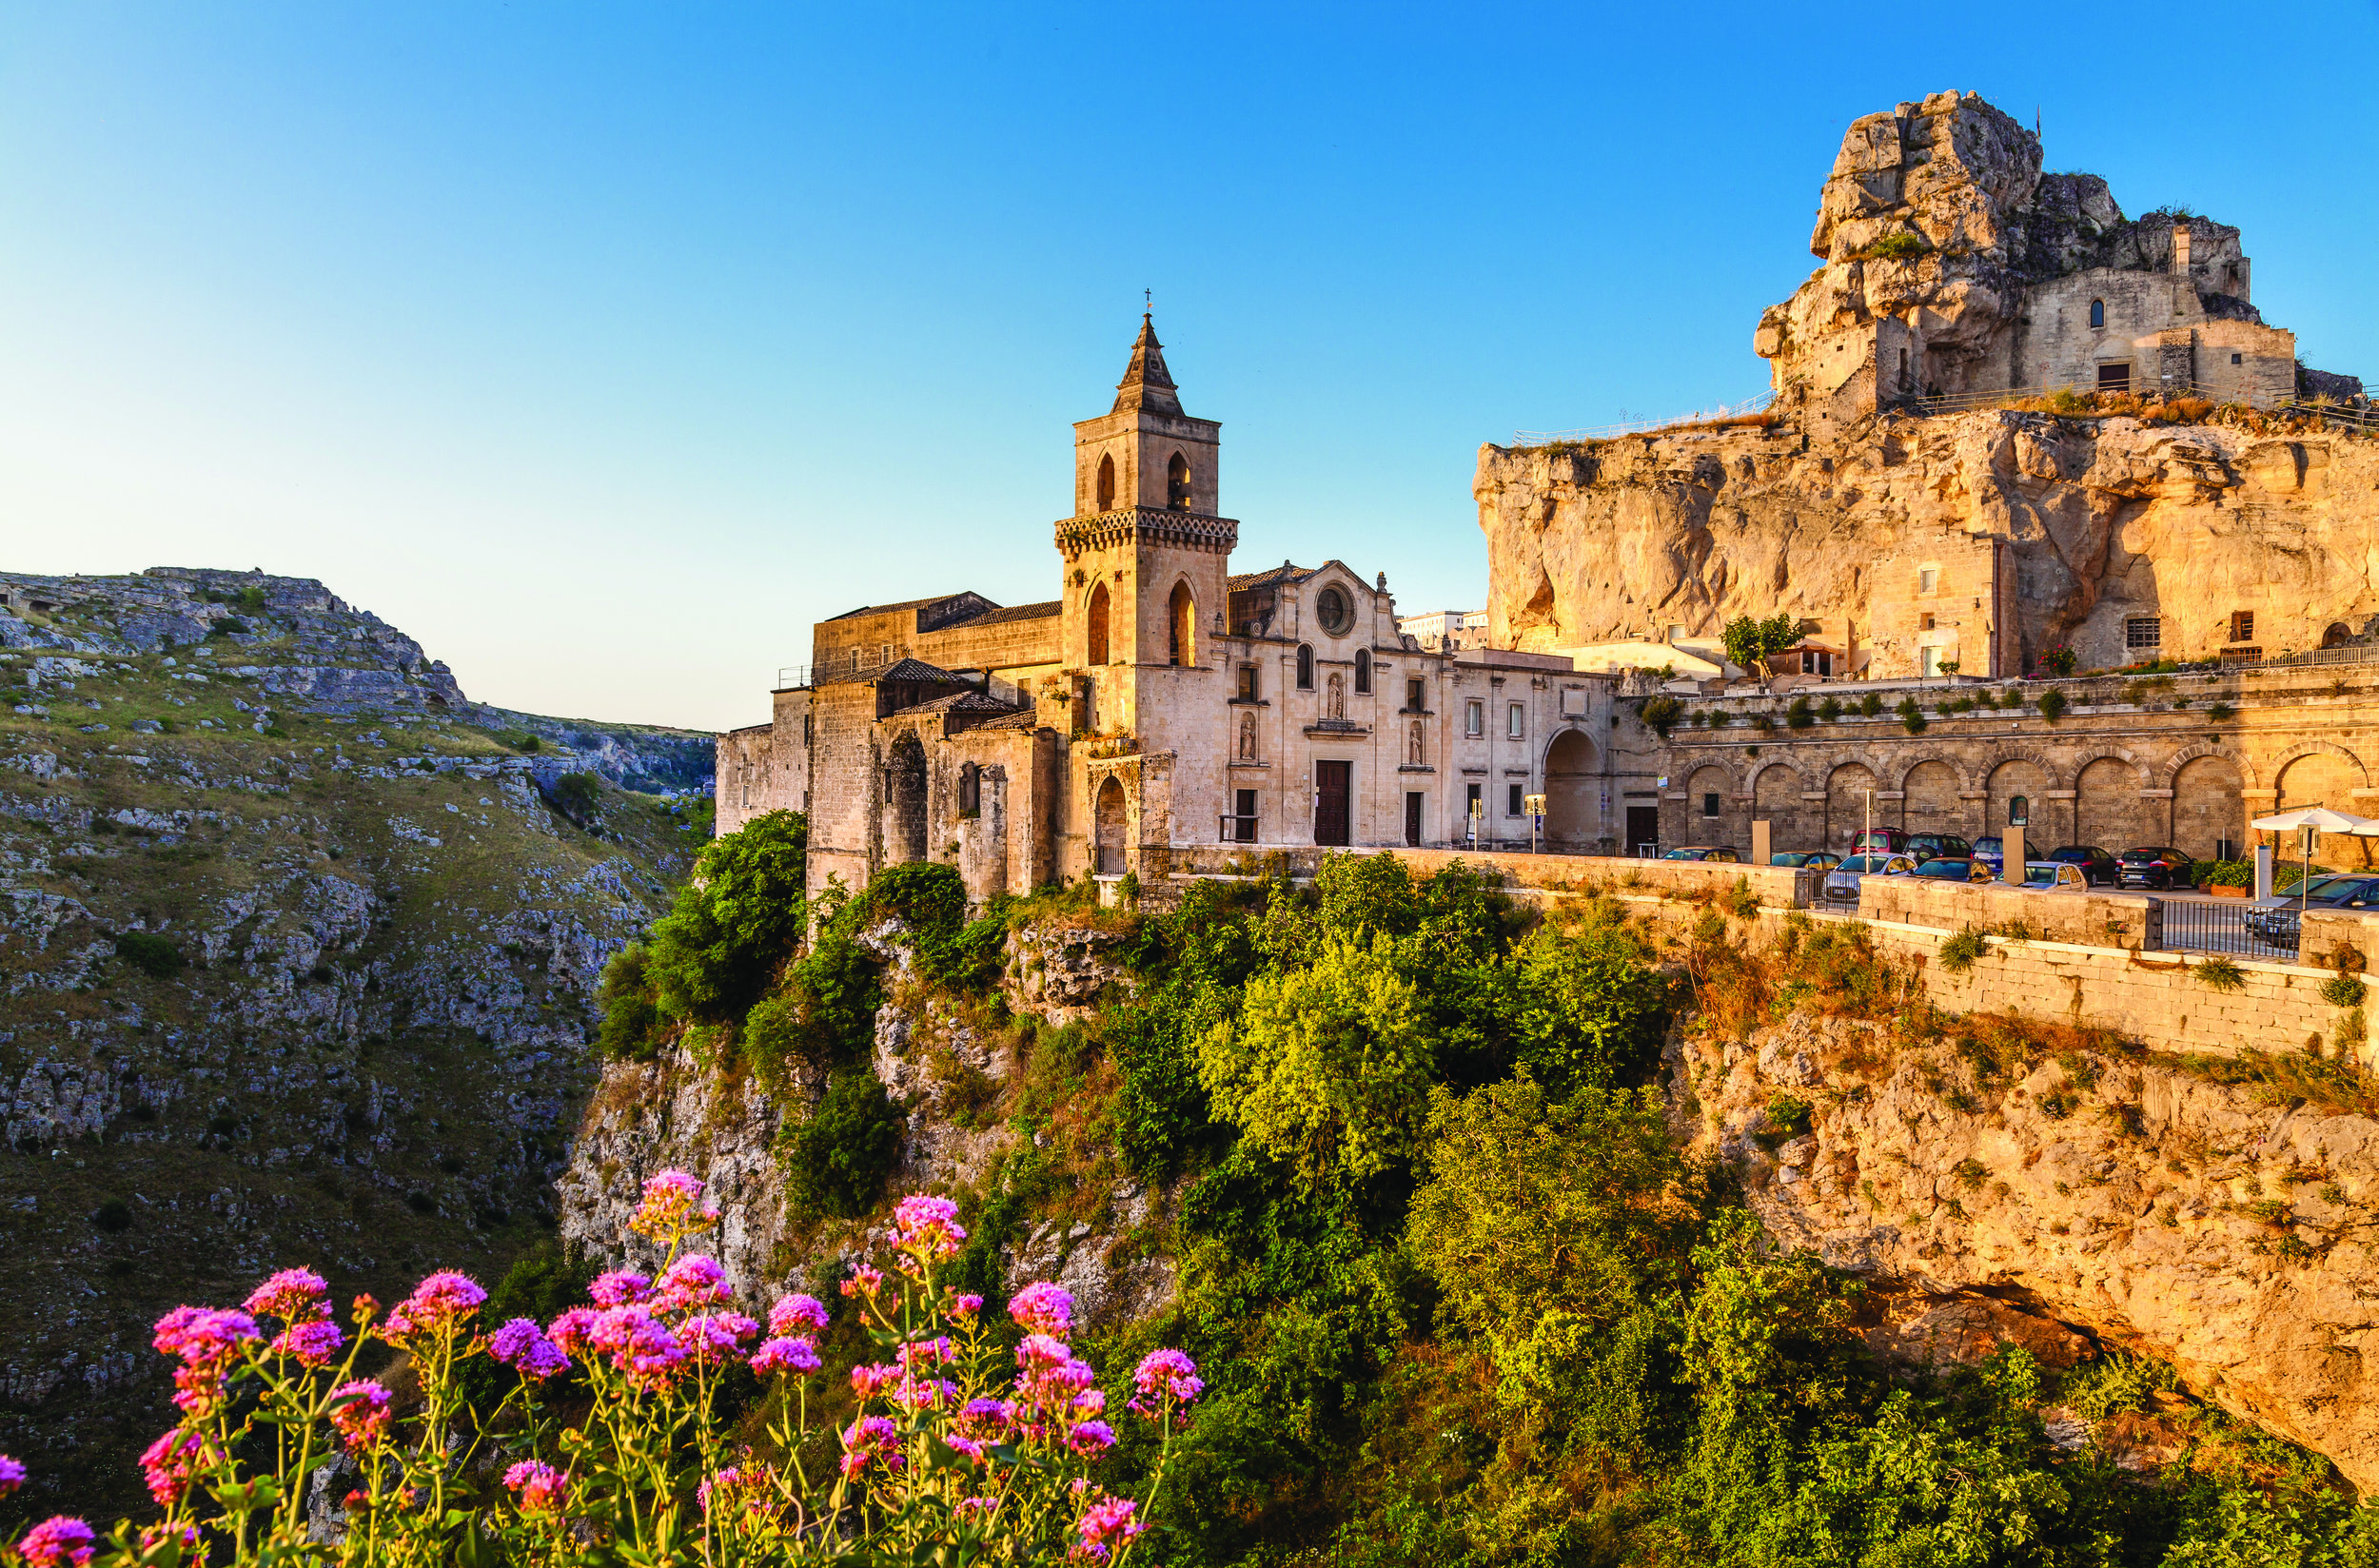 Matera & Alberobello - Spectacularly unusual living on Italy's heel.